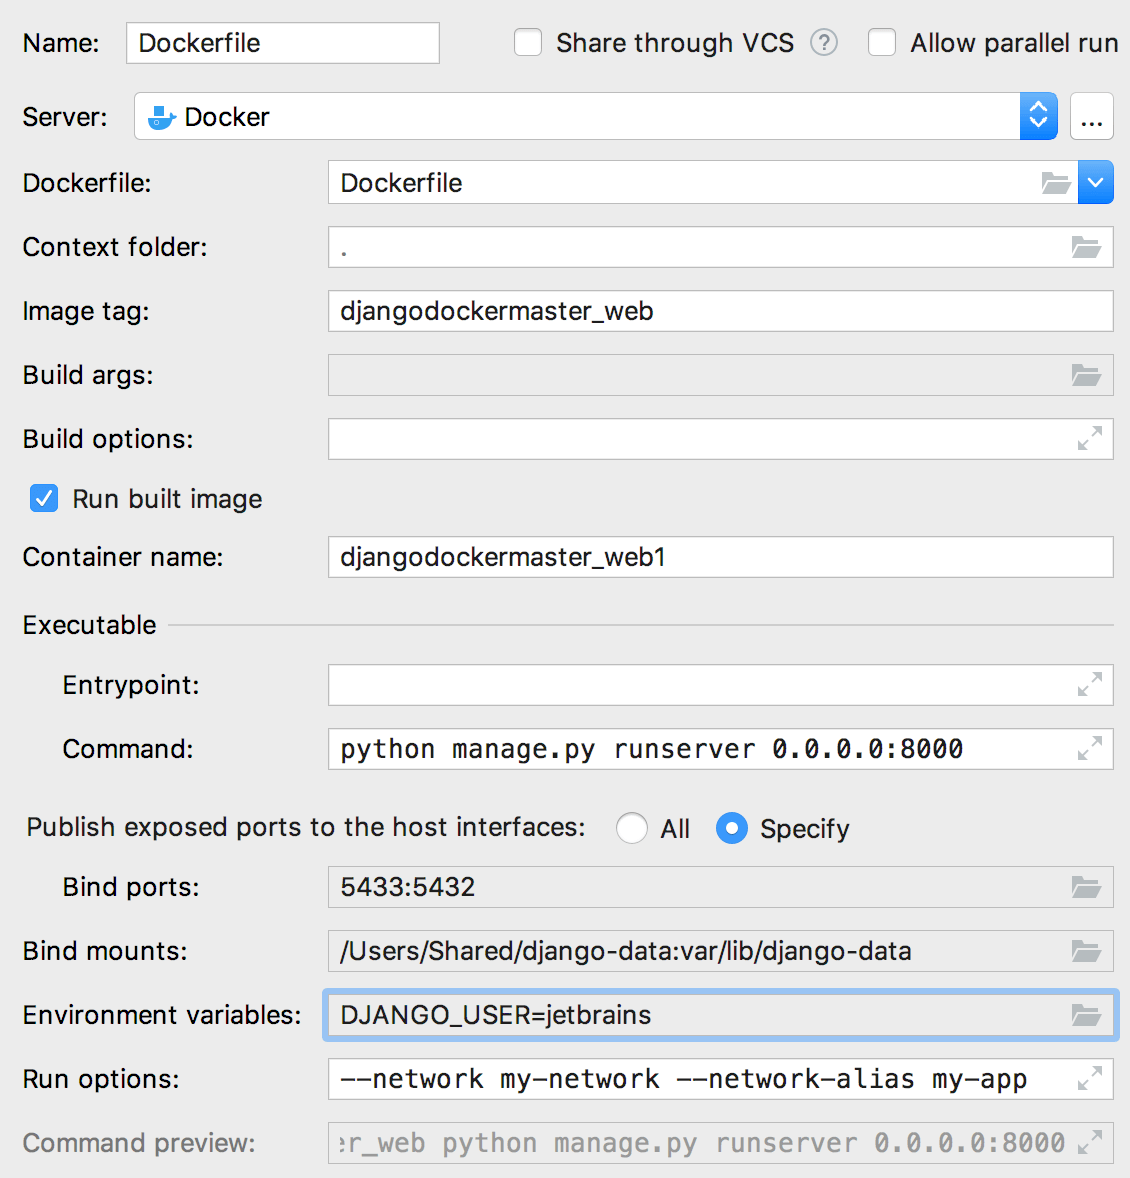 The Edit Deployment Configuration dialog with environment variables